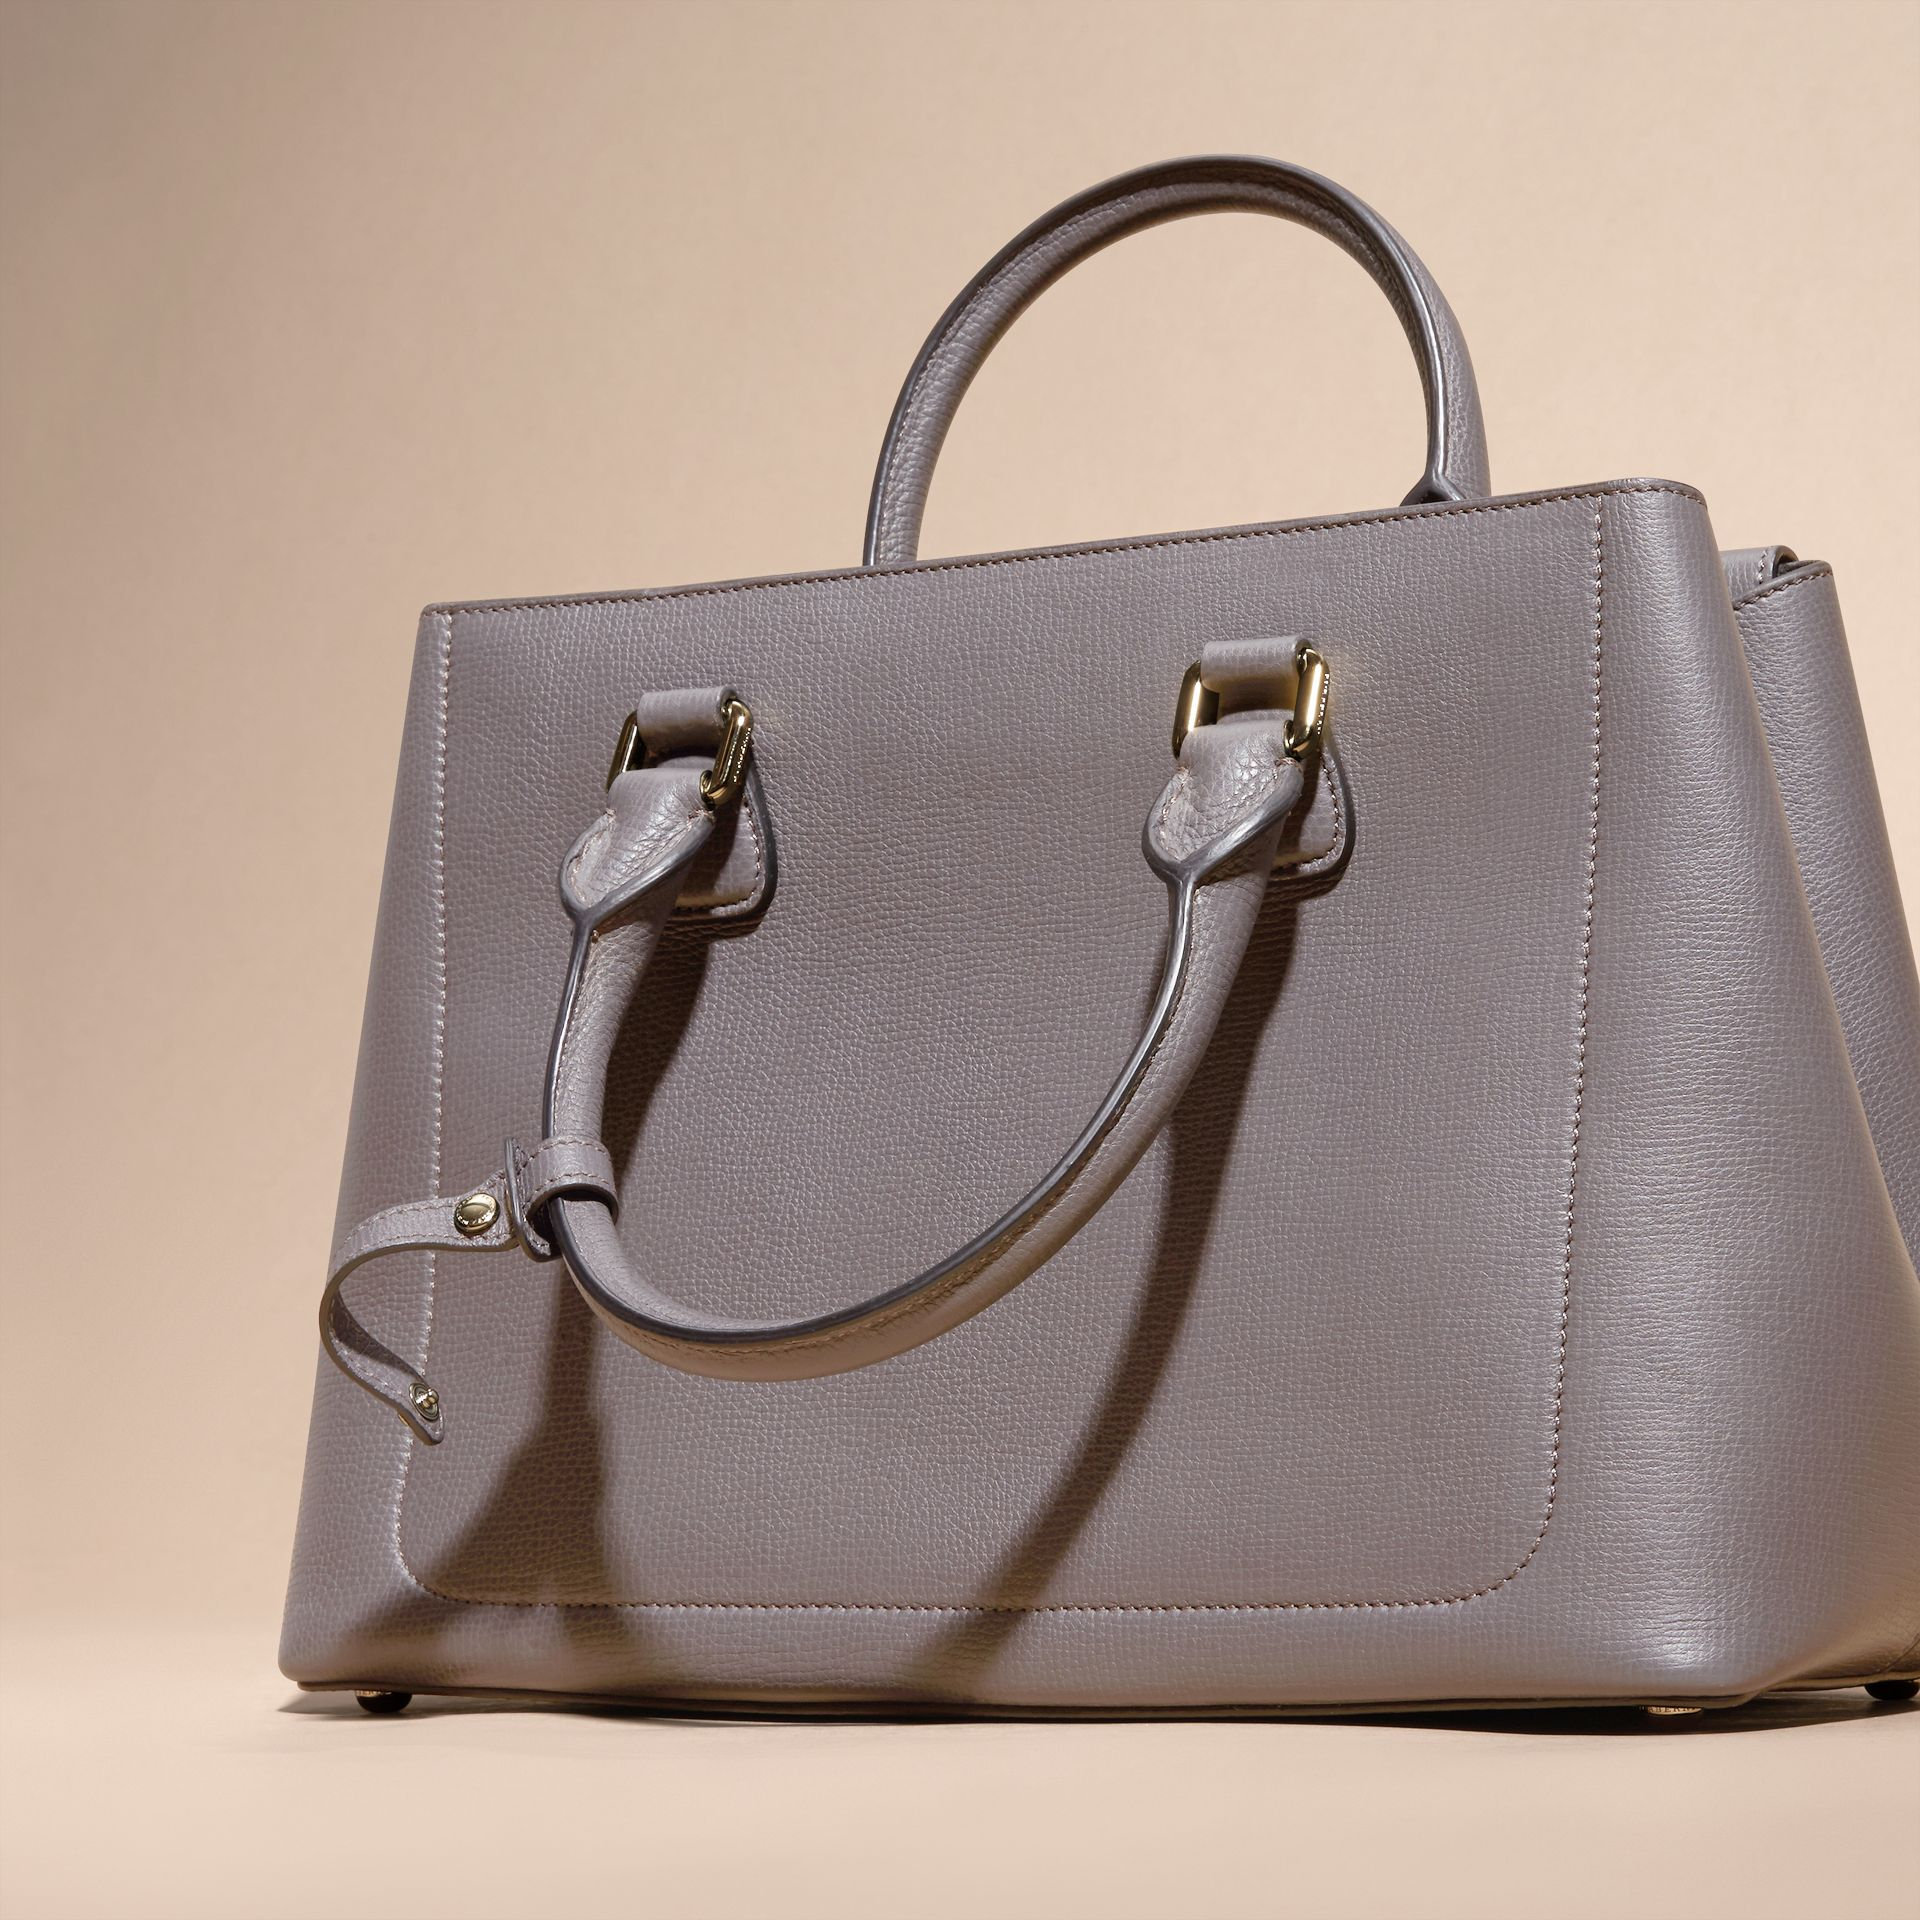 Sepia grey The Medium Saddle Bag in Grainy Bonded Leather Sepia Grey - gallery image 4